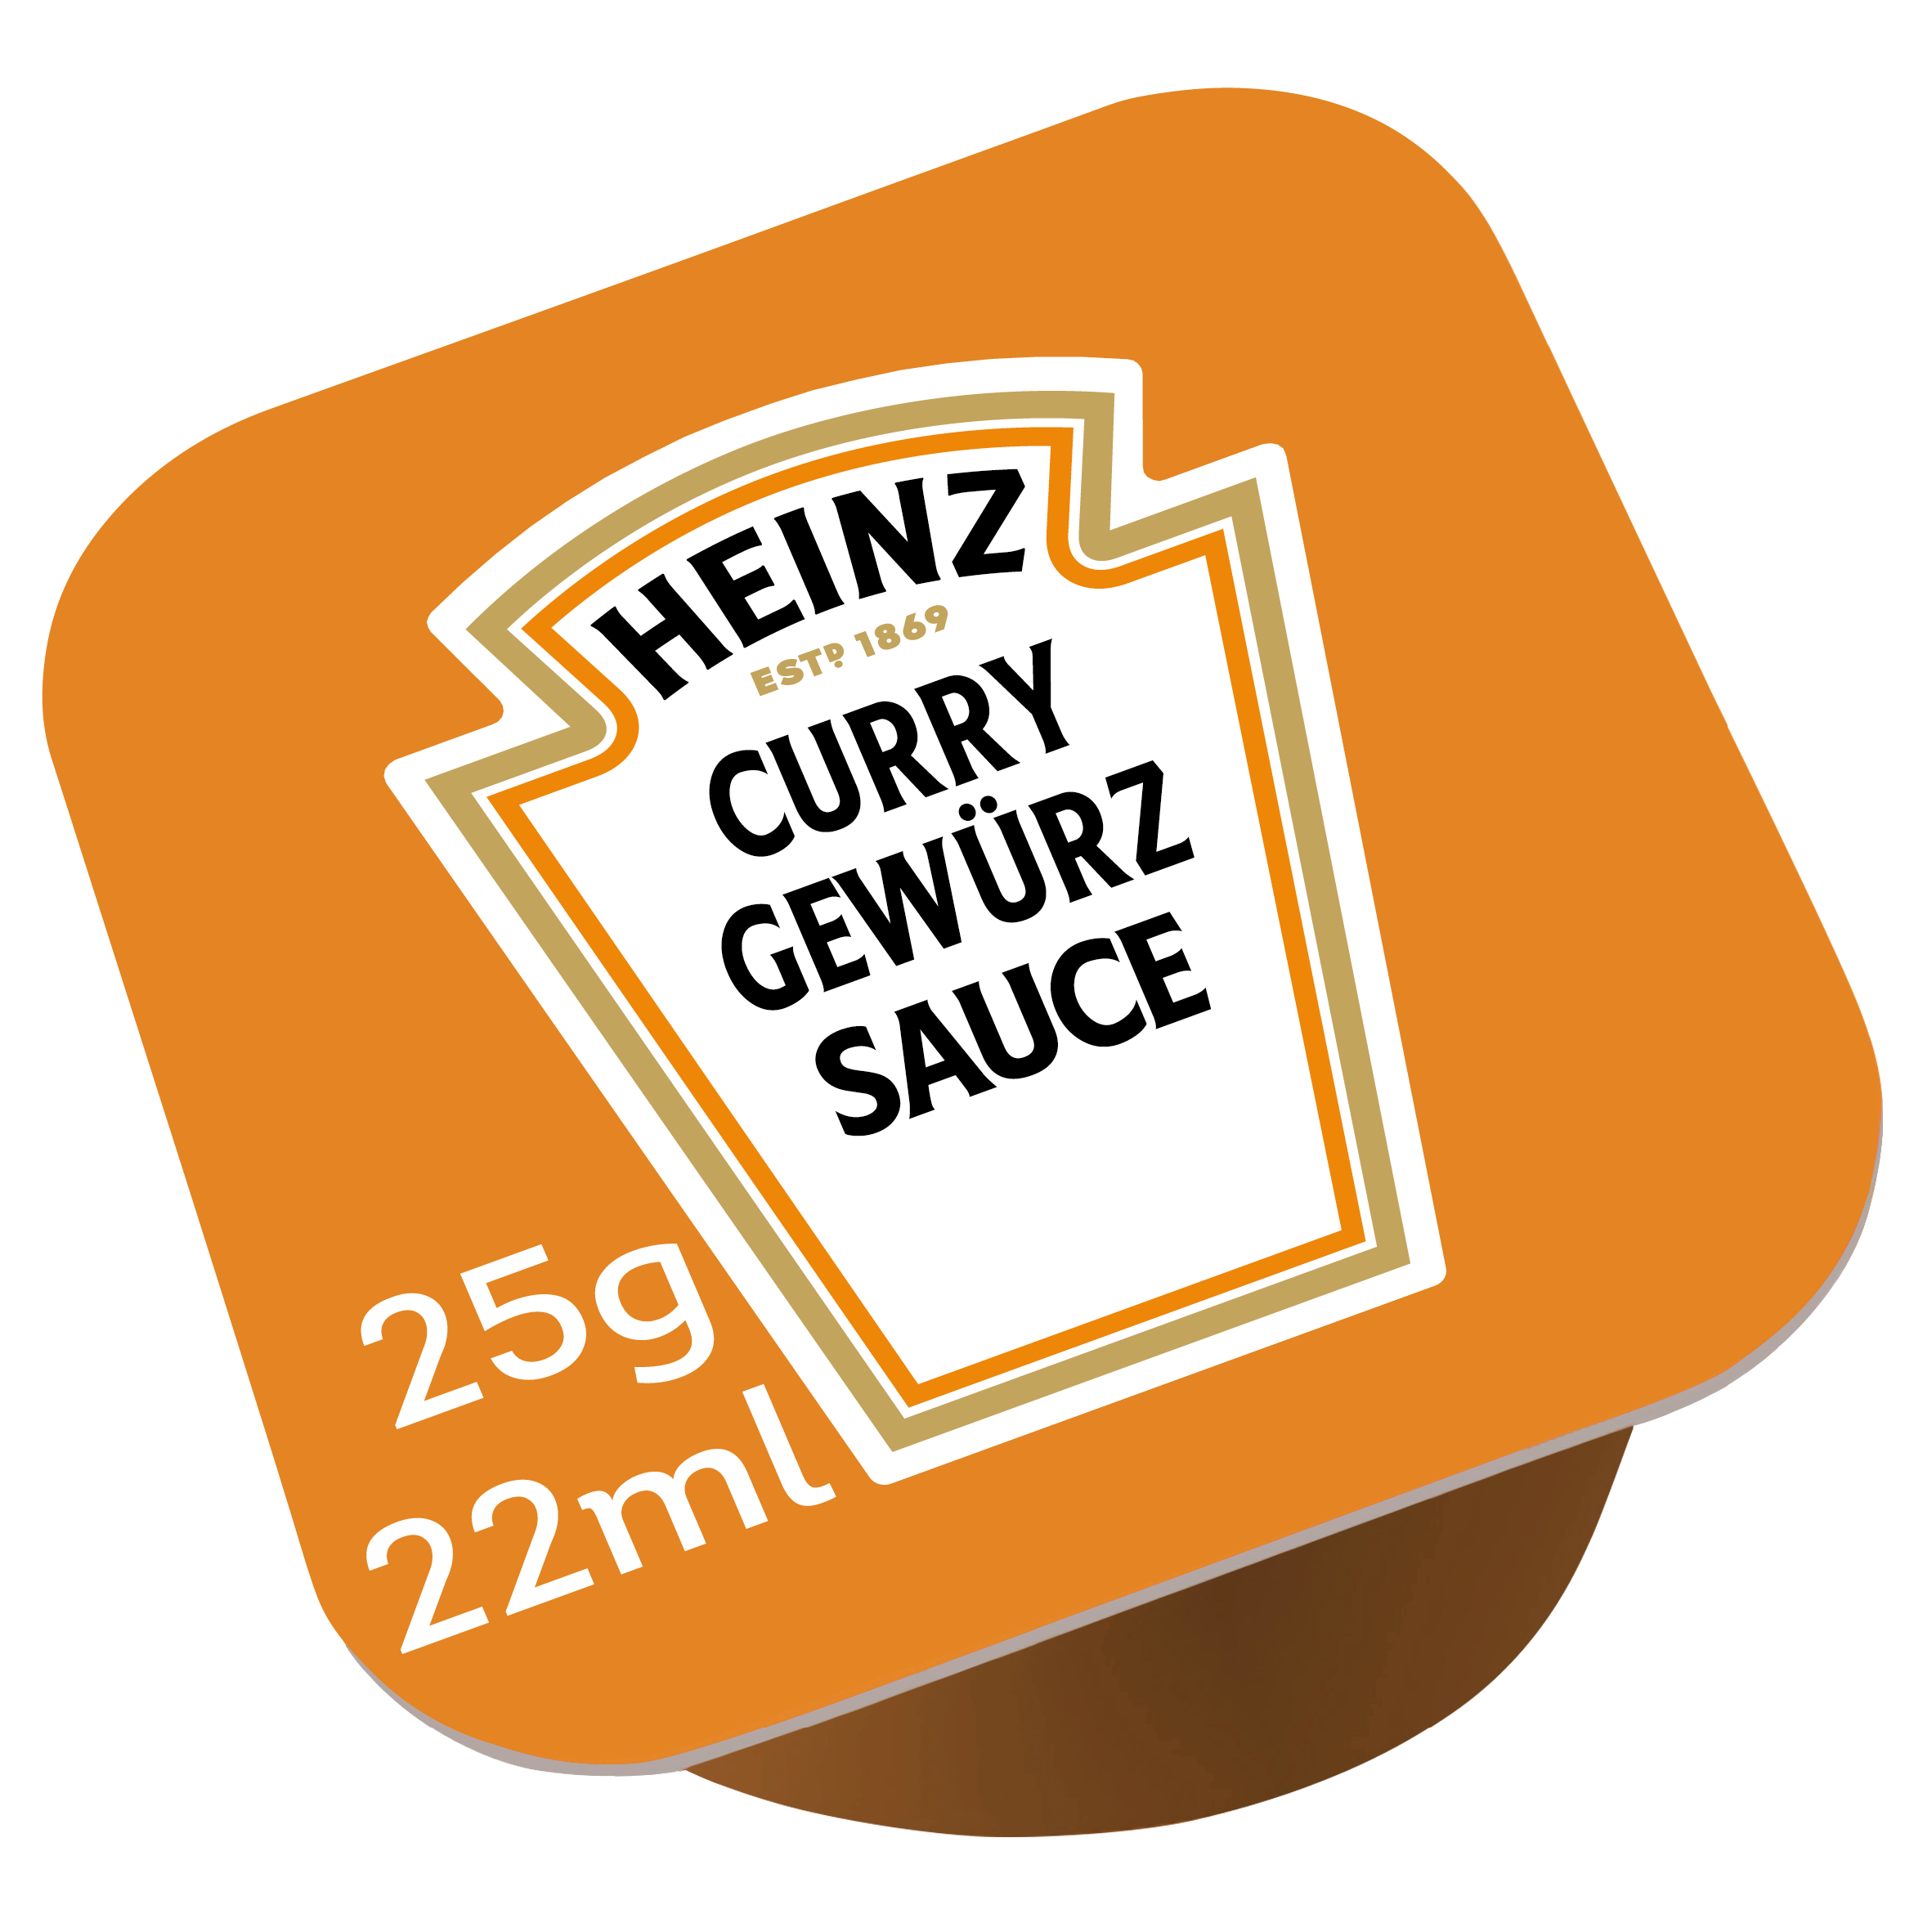 Heinz Curry Gewurz dippot 25ml image